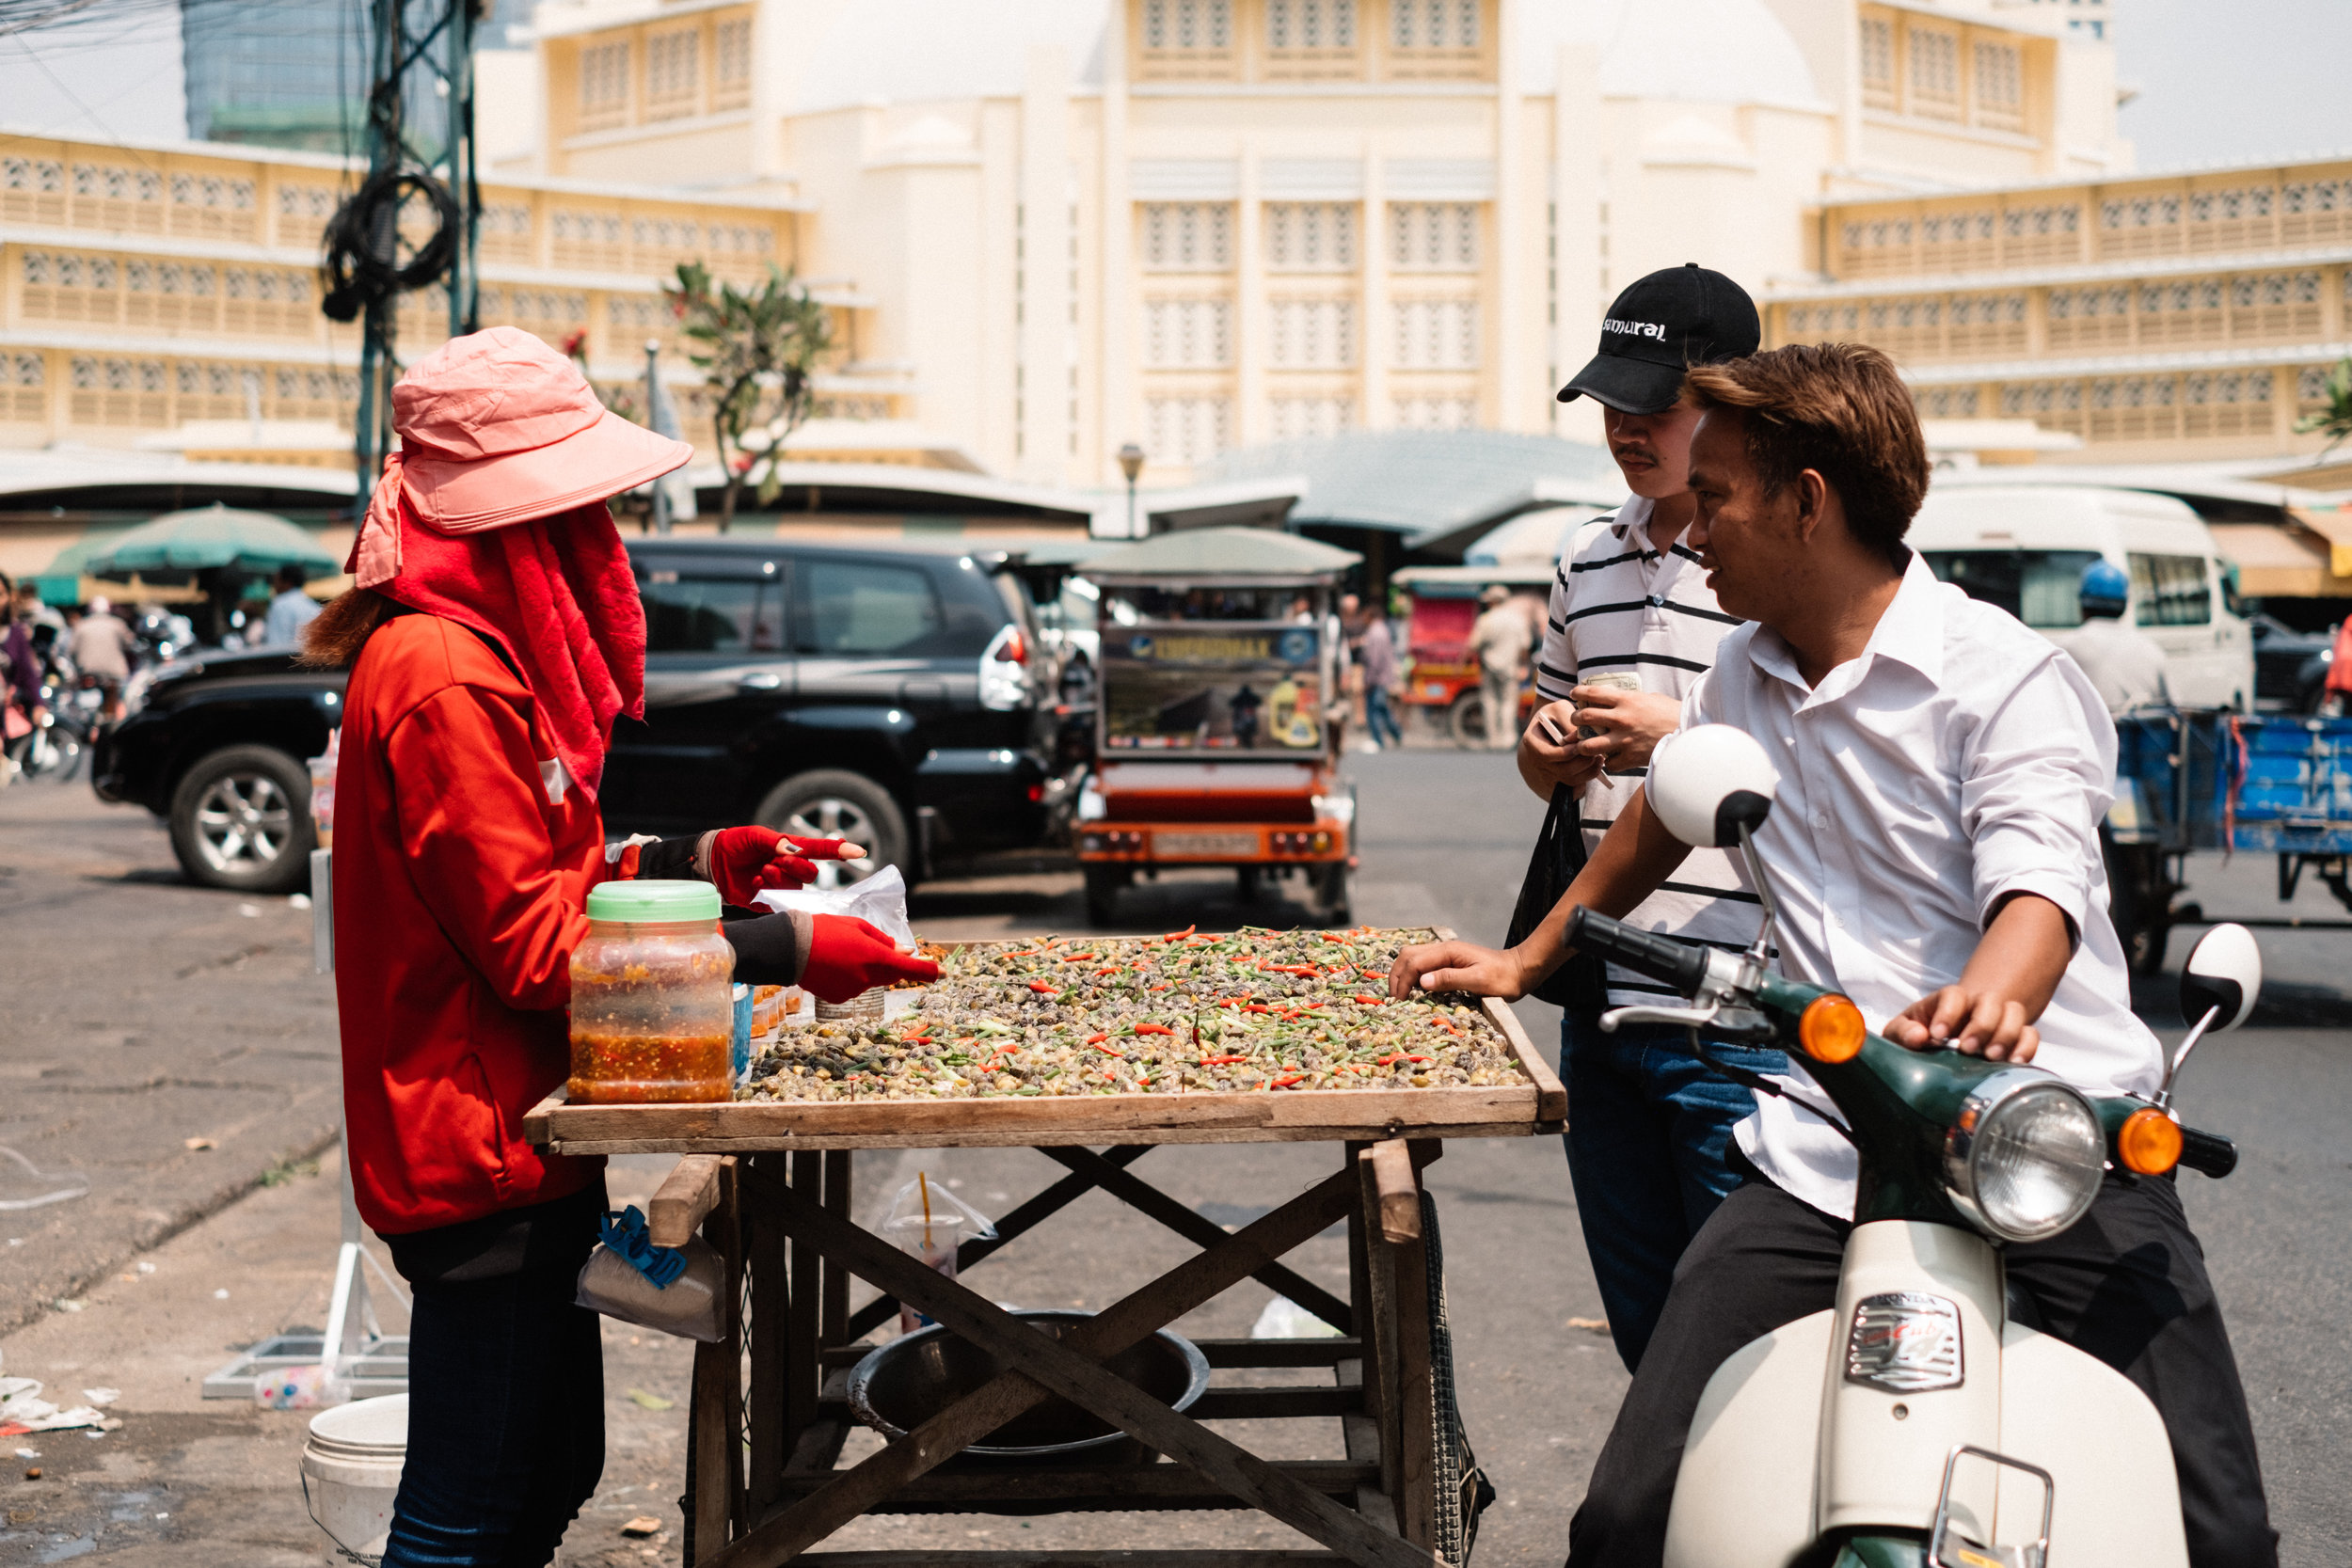 Two men stop by a street vendor in Phnom Penh Cambodia to check out the goods